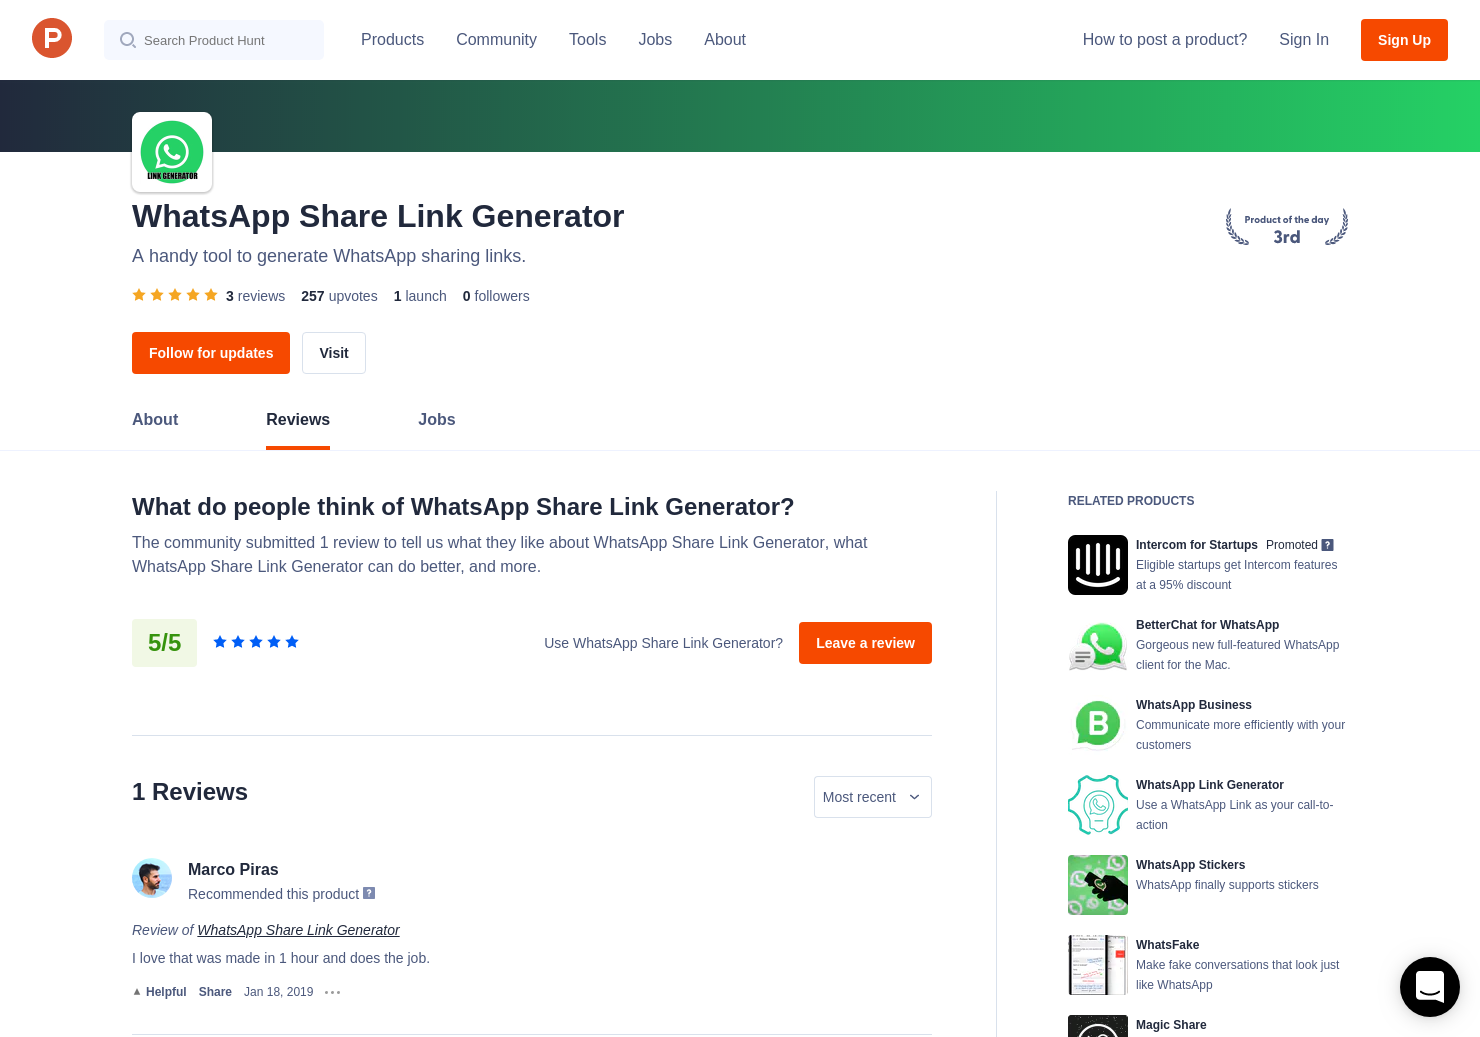 3 WhatsApp Share Link Generator Reviews - Pros, Cons and